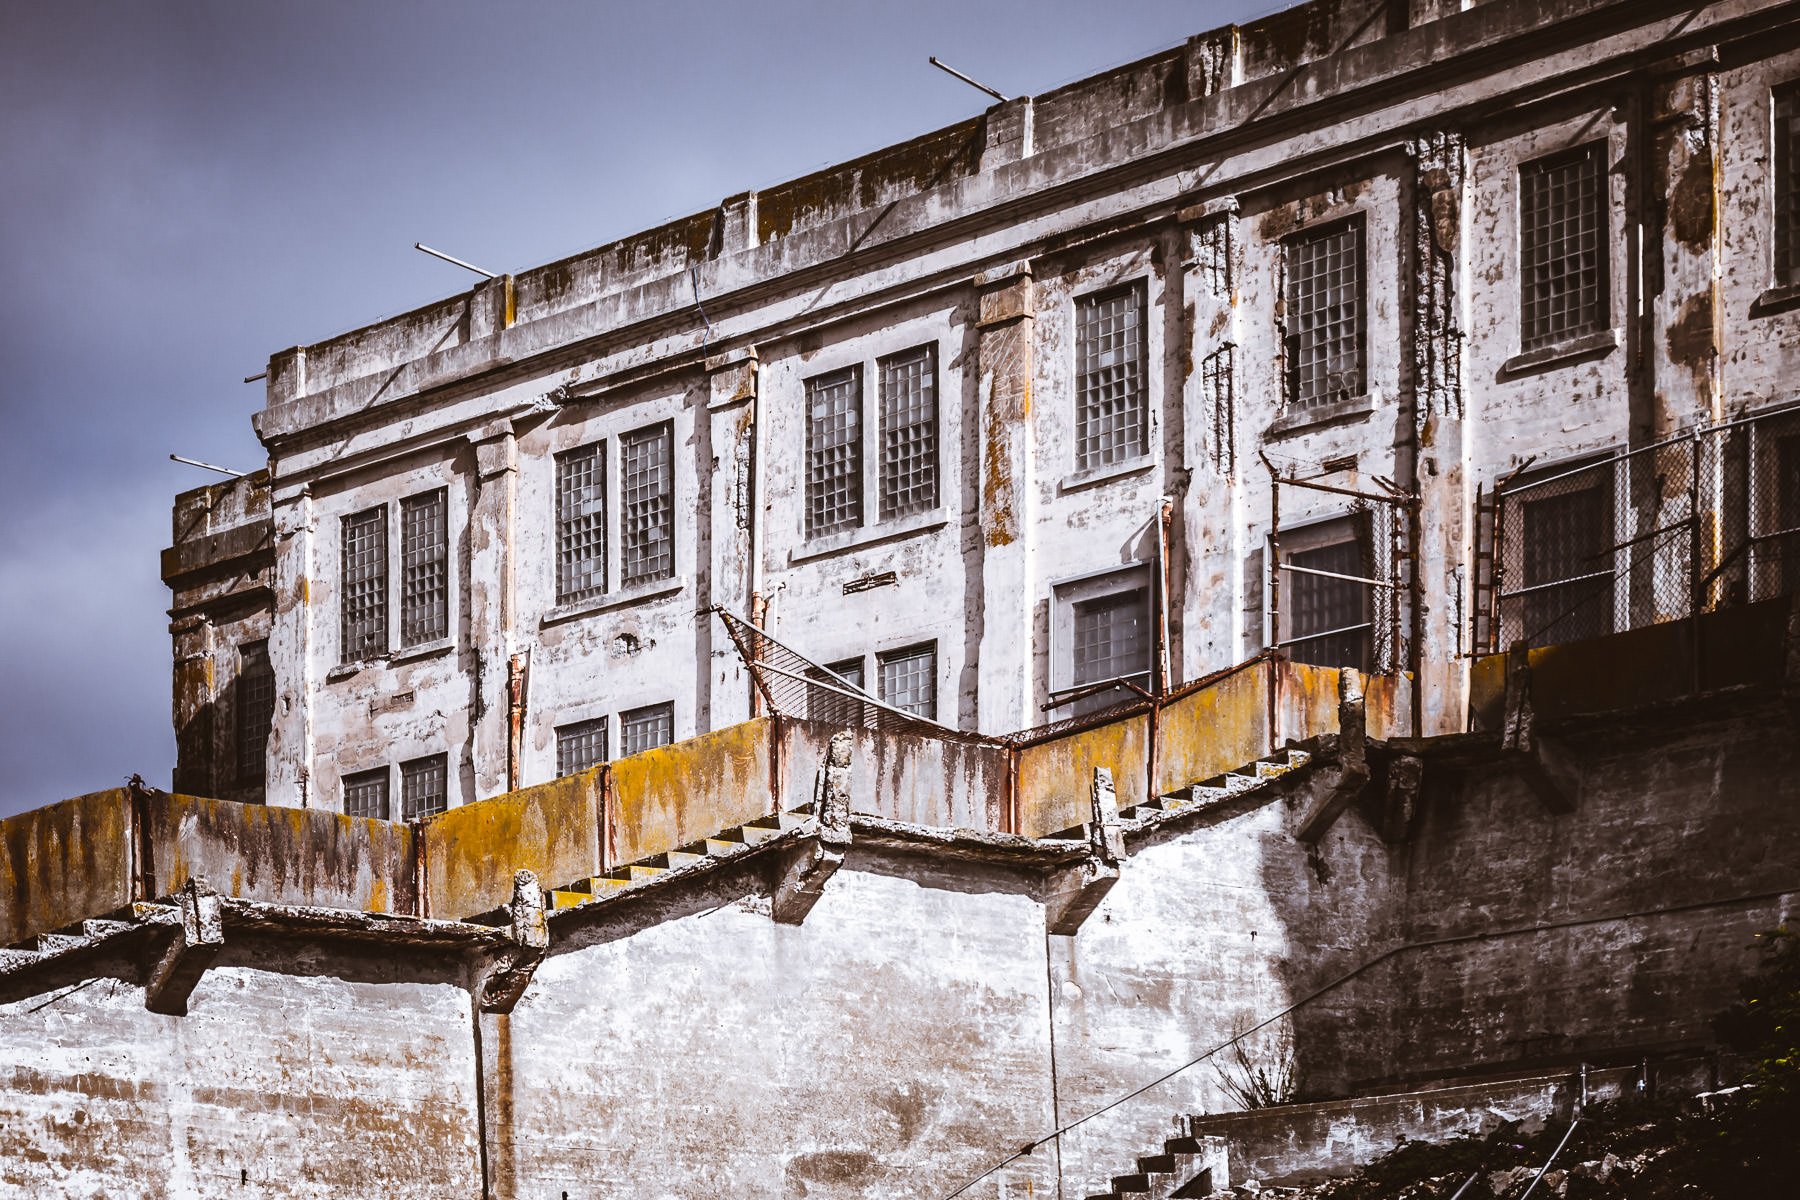 The main cell block at Alcatraz Prison in San Francisco decays in the elements.